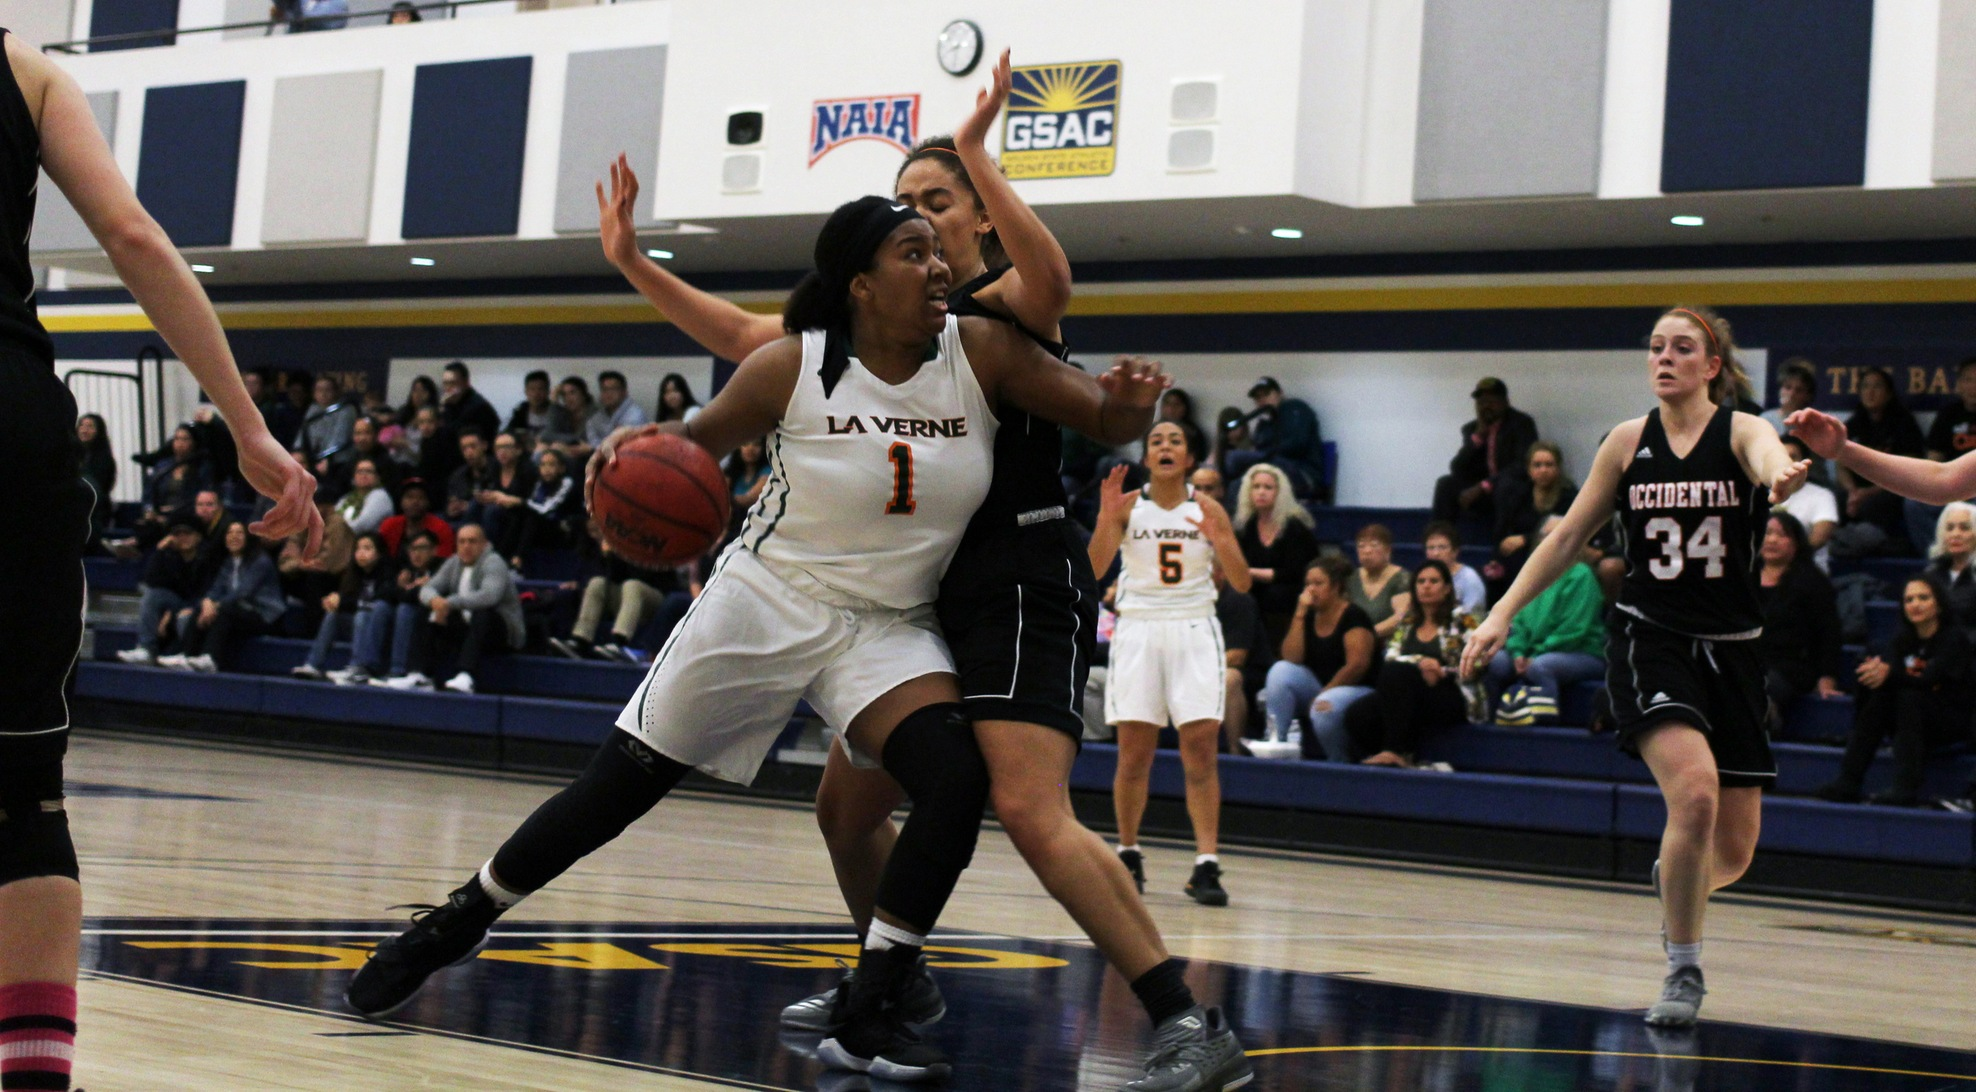 Leopards Surge in second half to beat Sagehens